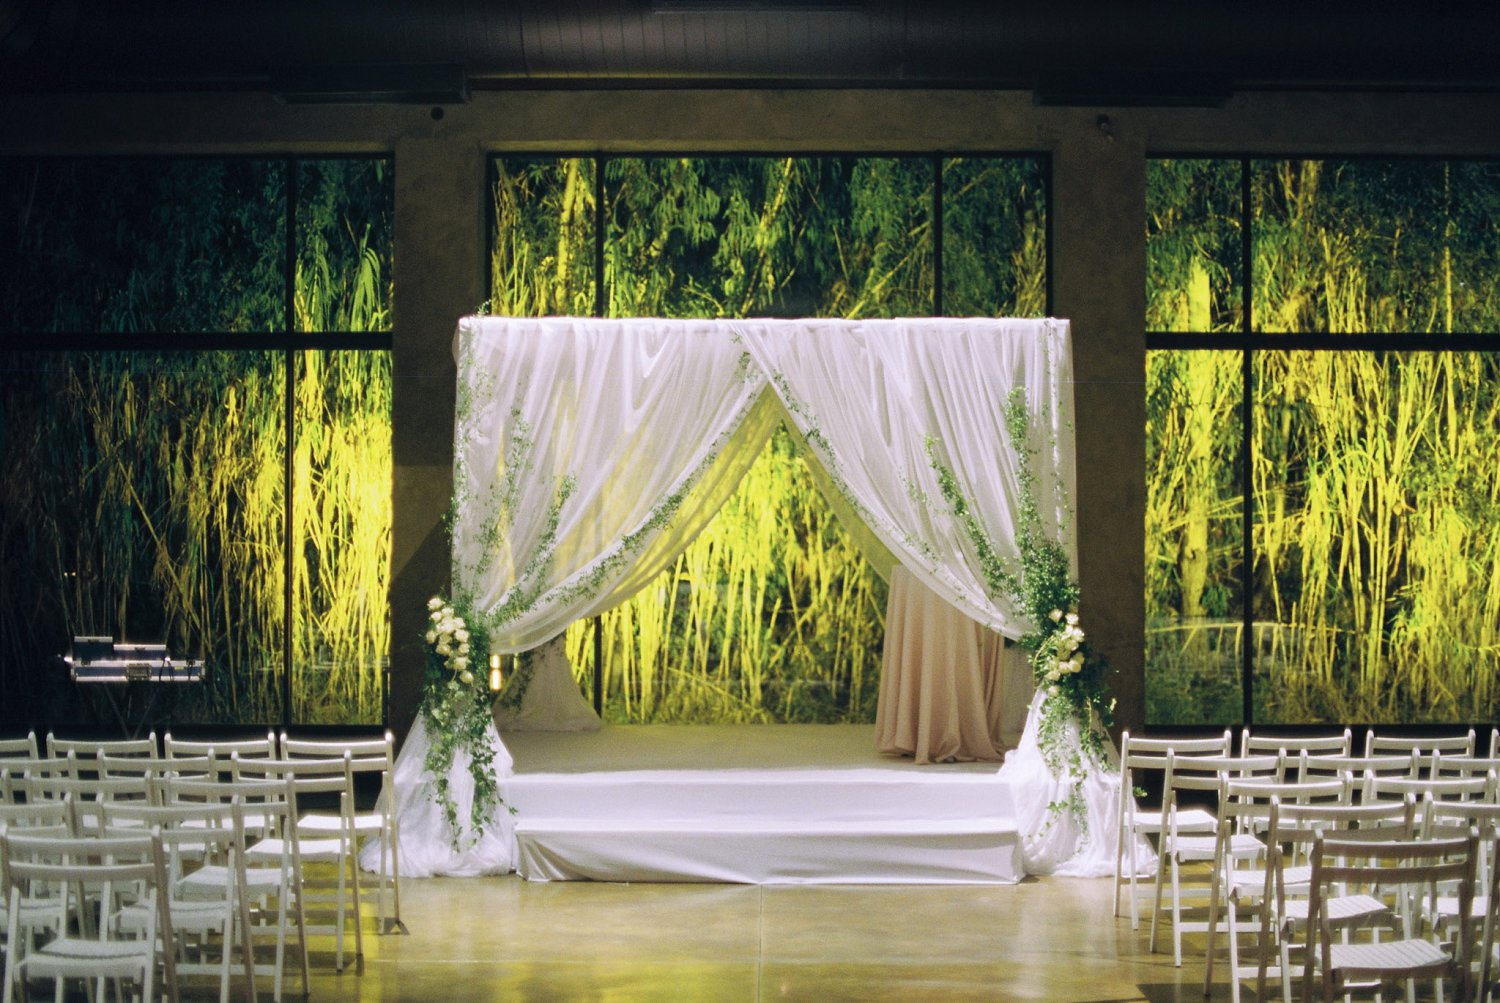 Indoor chuppah at Baya'ar wedding